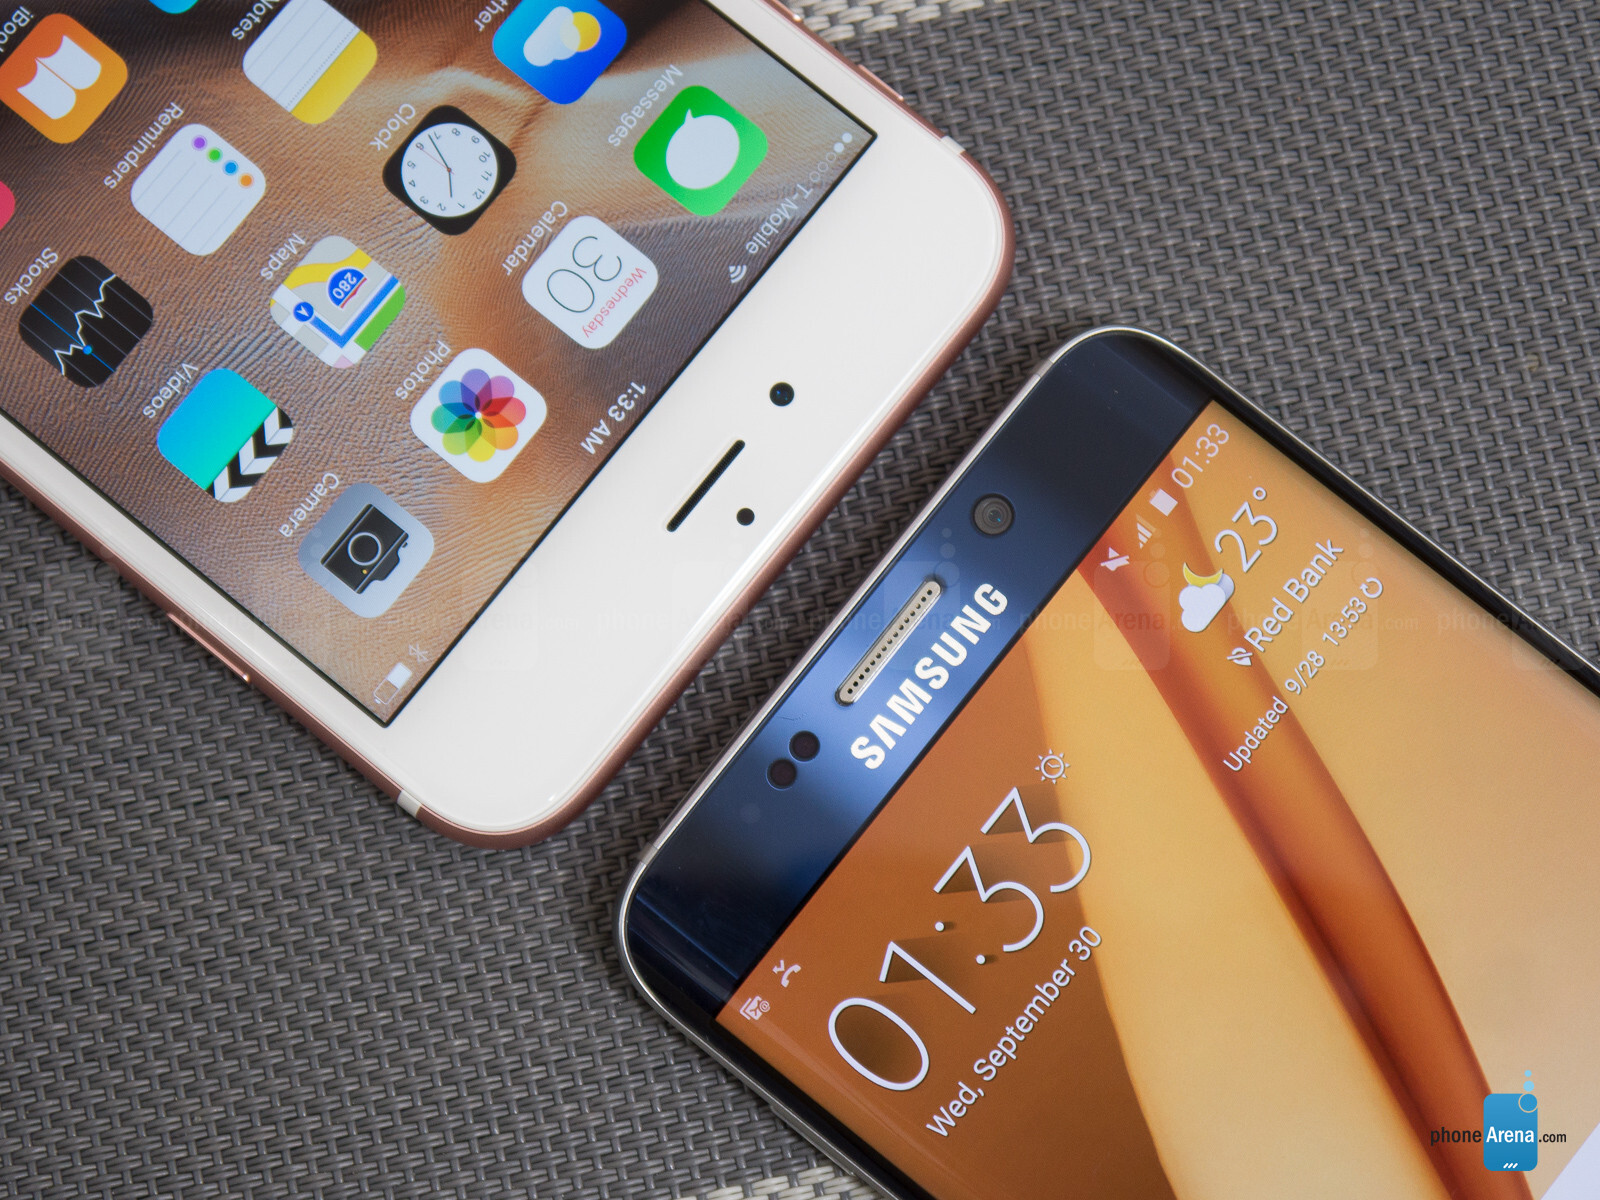 iPhone 6 Plus Price $439. Specifications Highlights. Product. Galaxy S6 Edge (2015), Price: 535 USD at Amazon.